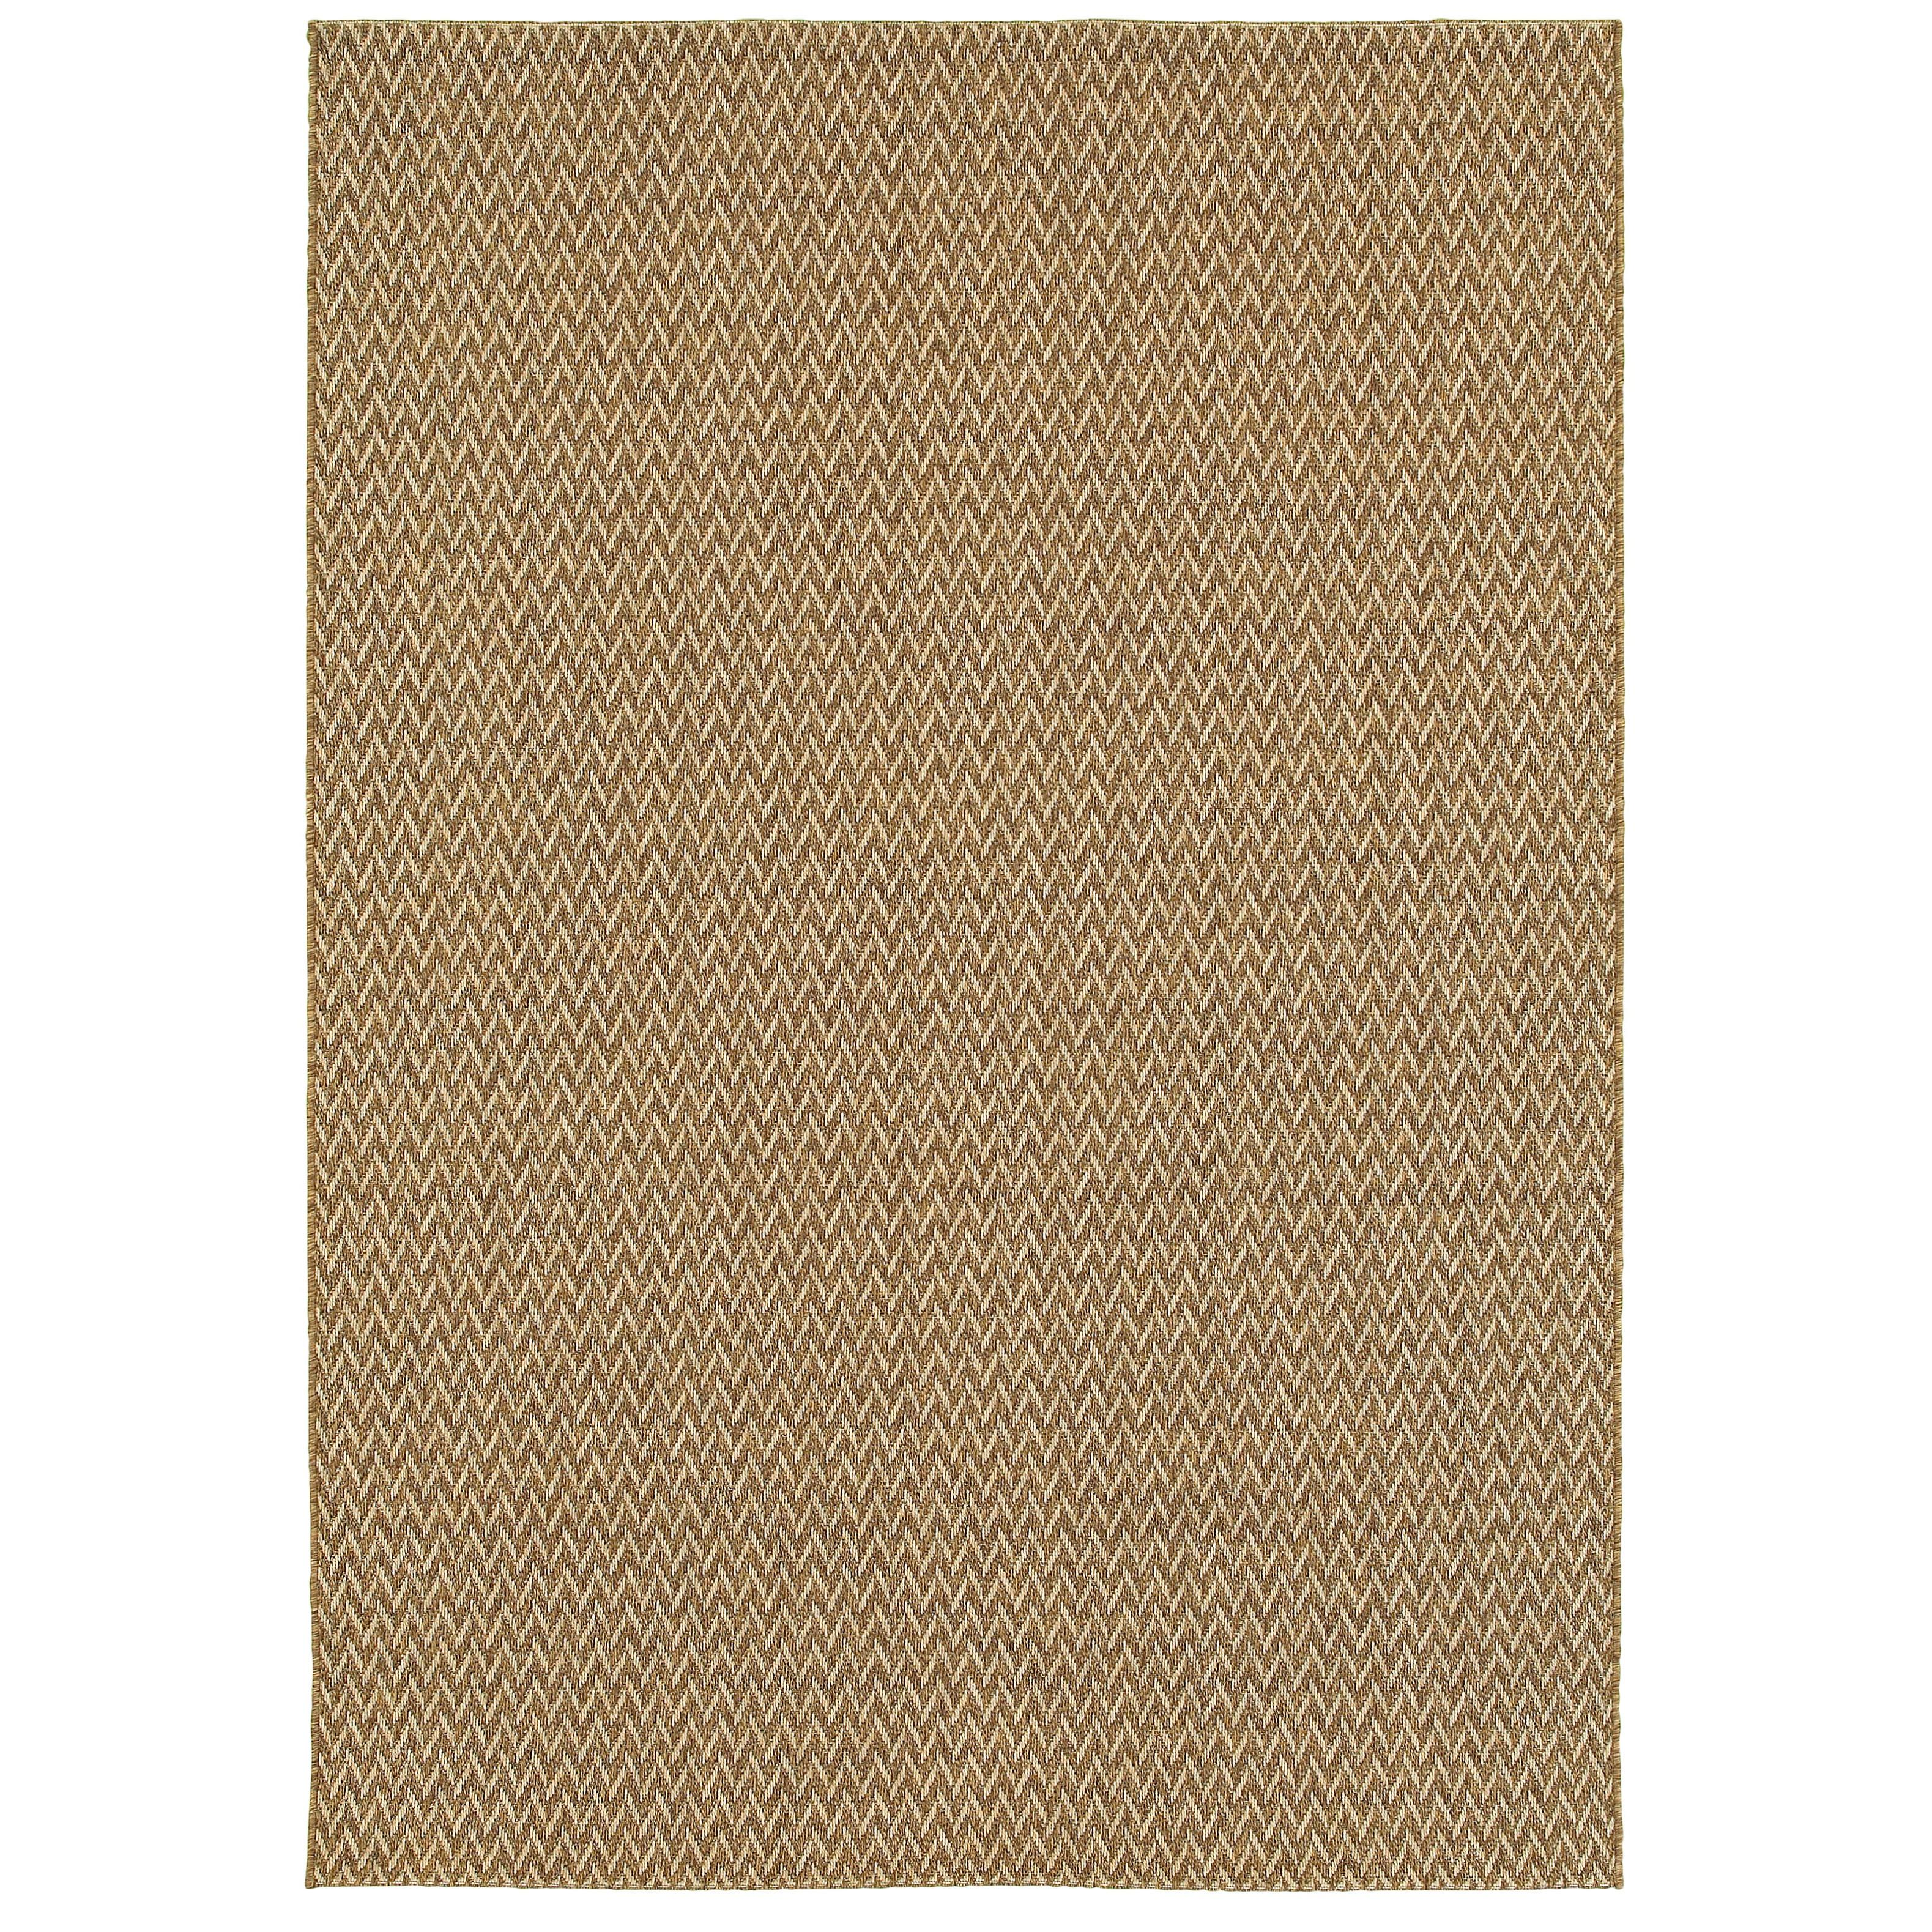 Balta Montgomery Golden Wheat Indoor Outdoor Area Rug